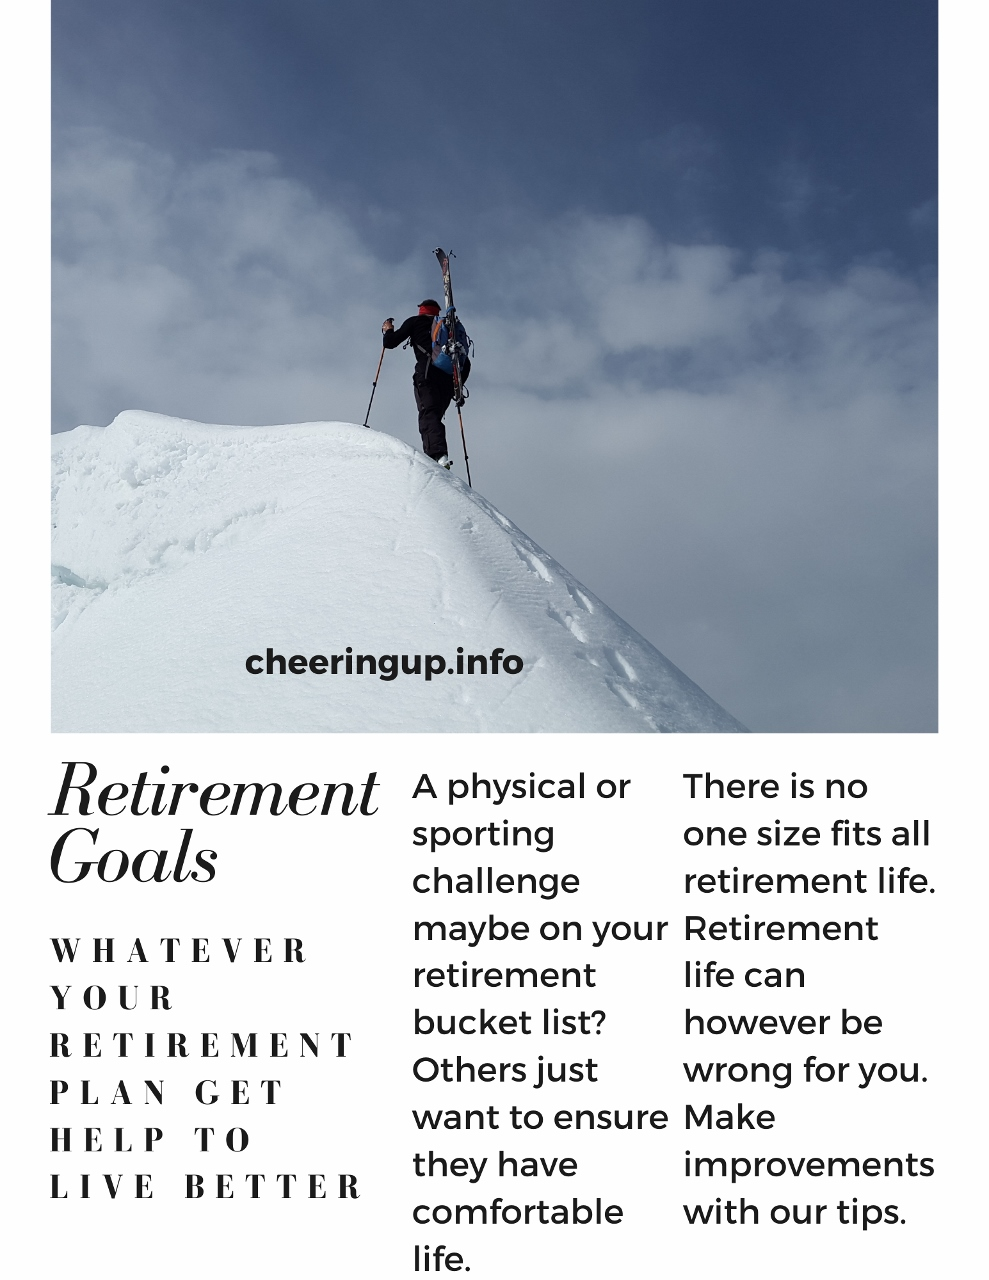 How To Achieve Your Enhance Retirement Goals In 2022